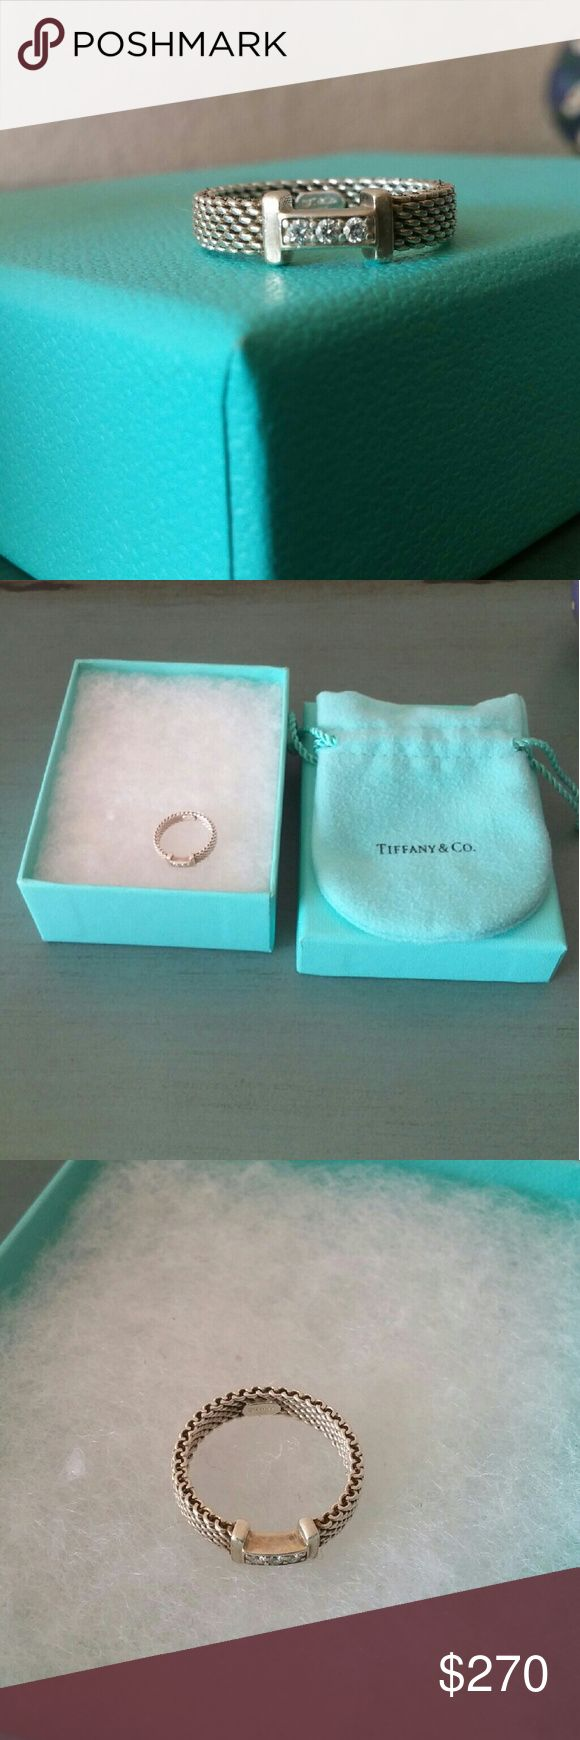 Tiffany & Co. 4 3/4 silver diamond ring Authentic Tifanny ring . Silver 925 3 round diamonds full cut  0.04 ct. As you can see in the picture there is a bit of black on the smooth silver part. Iv never had it cleaned, its been put away and I don't use it.  Its not new so its not going to look new.  Its never been resized. I have the box and pouch. Its still being sold on Tiffany & Co. Website for 575. Tiffany & Co. Jewelry Rings